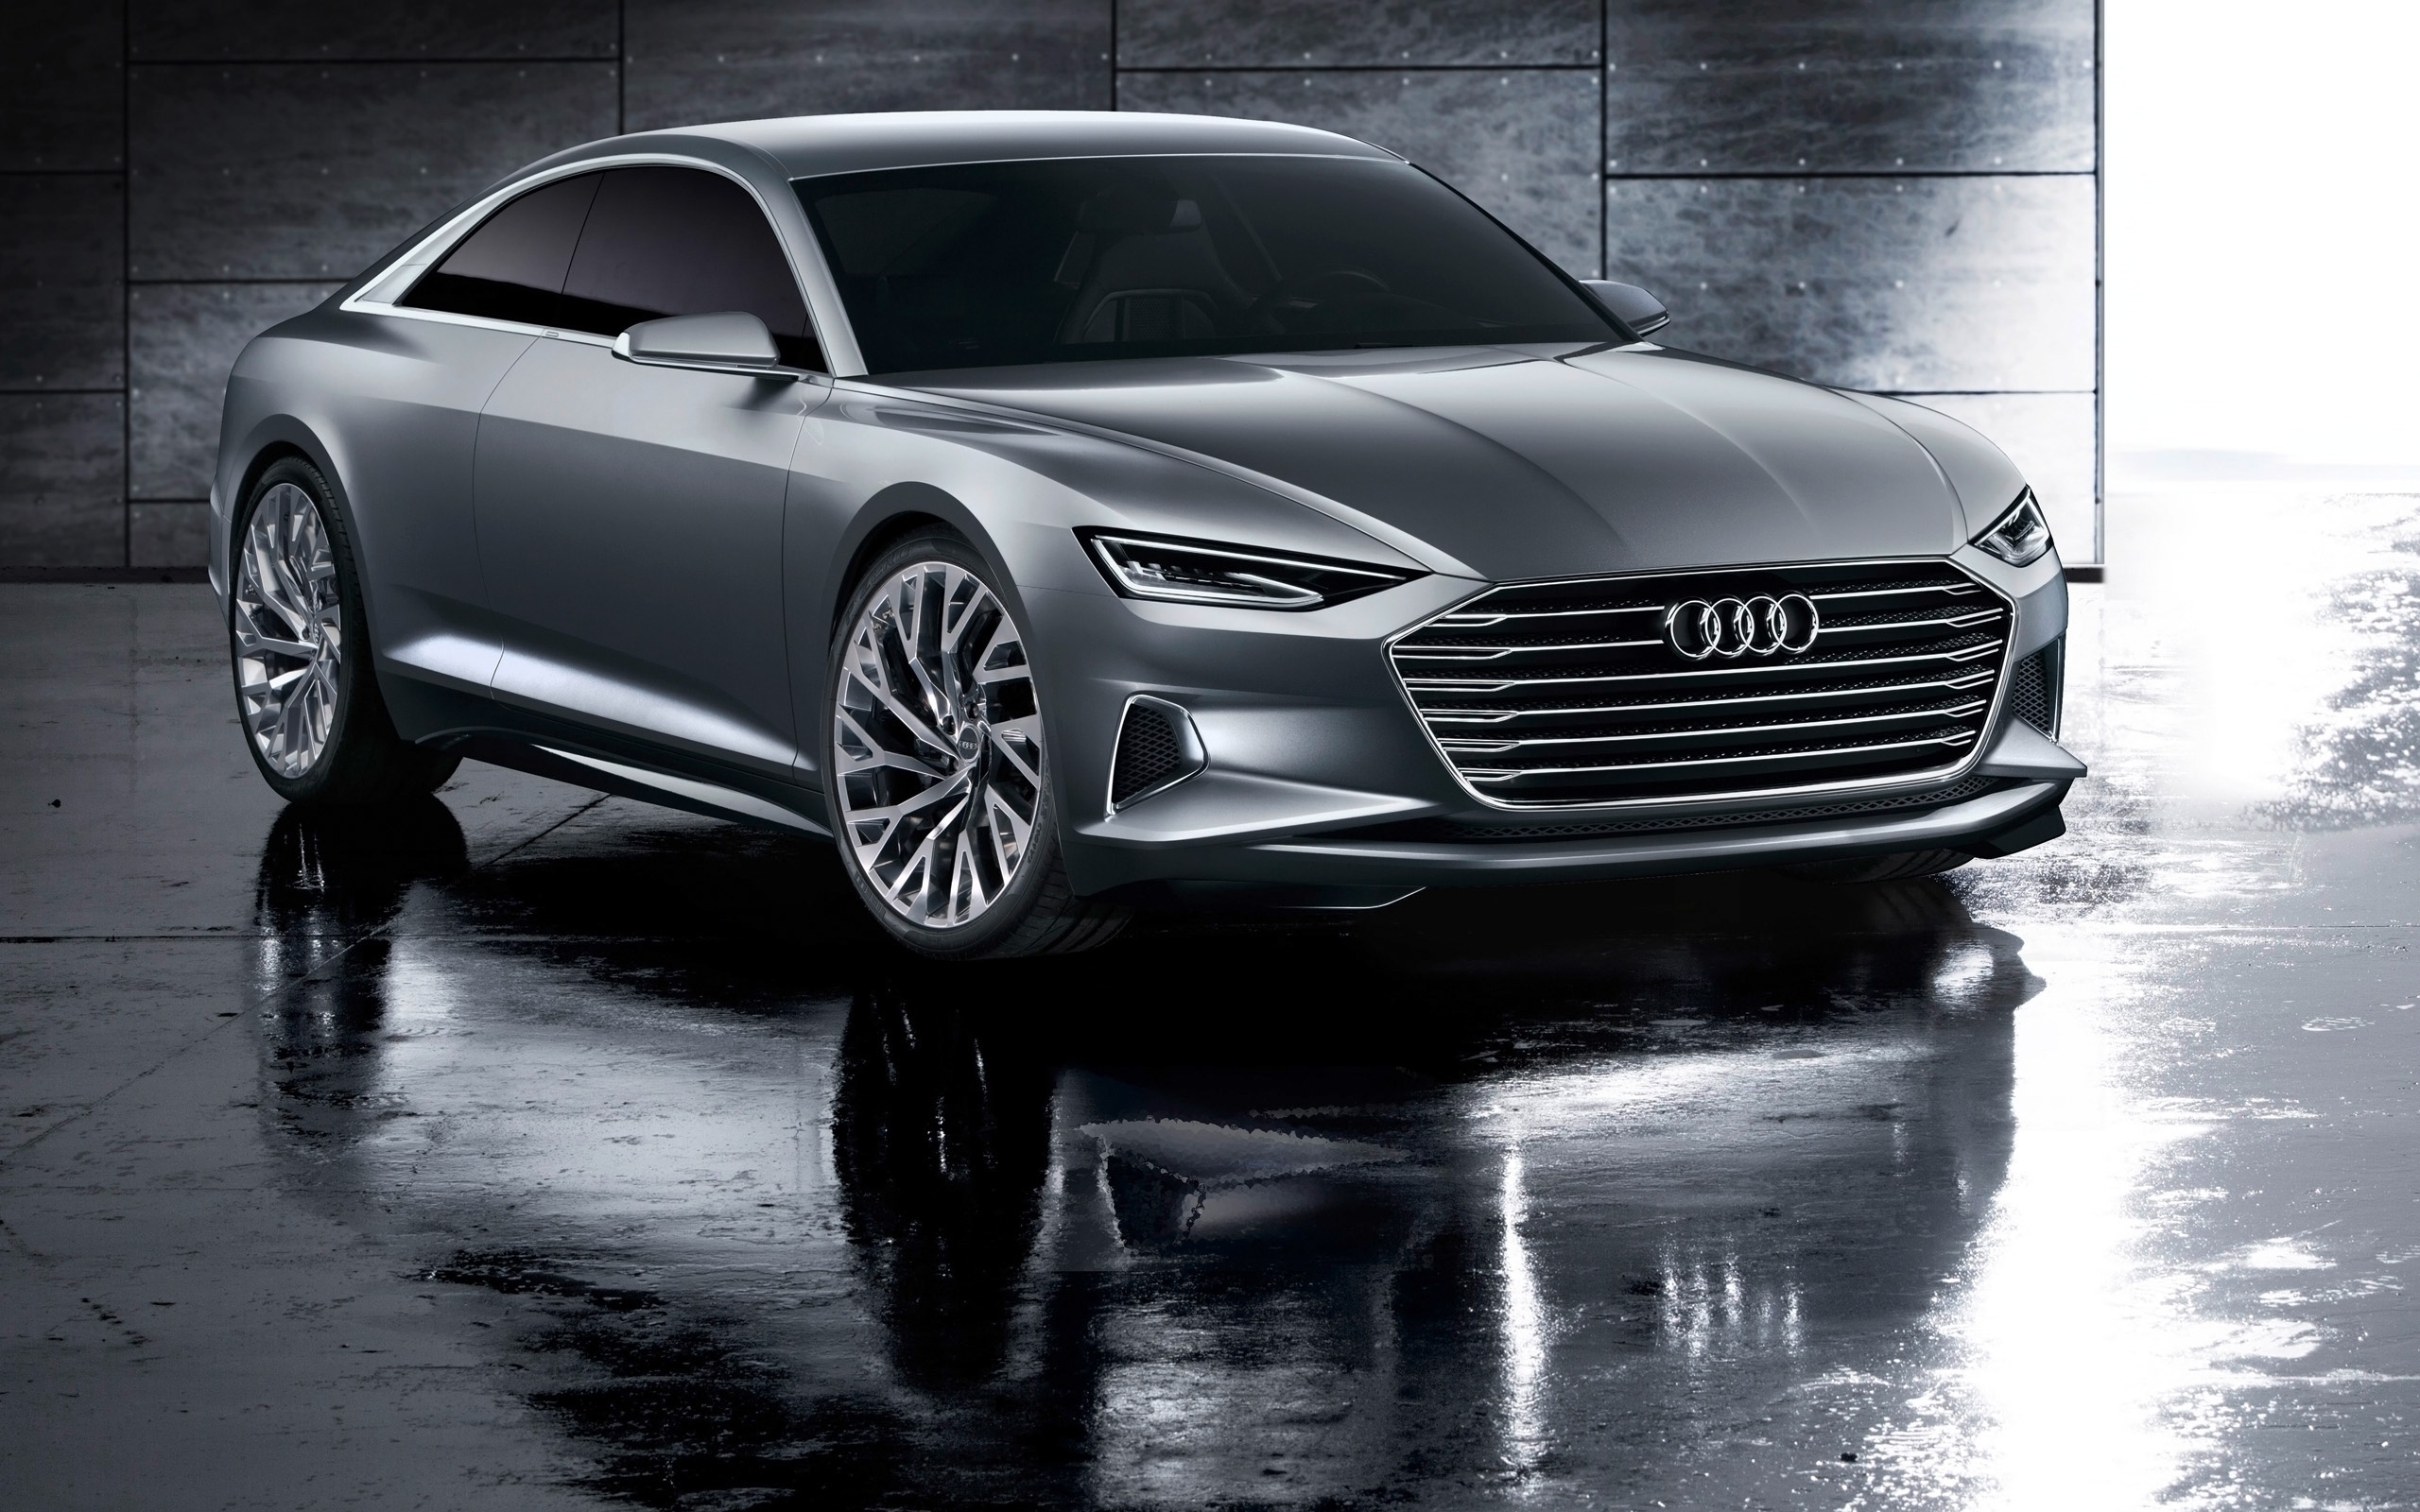 2014 Audi Prologue Concept 373.19 Kb